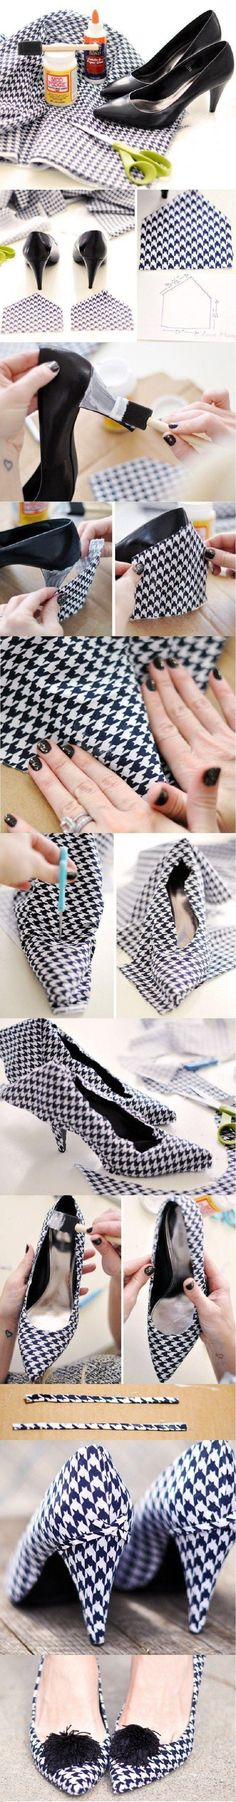 Top 10 Unique DIY Heels Ideas. These are the best ideas I've seen for changing shoes. There are some really ideas here.